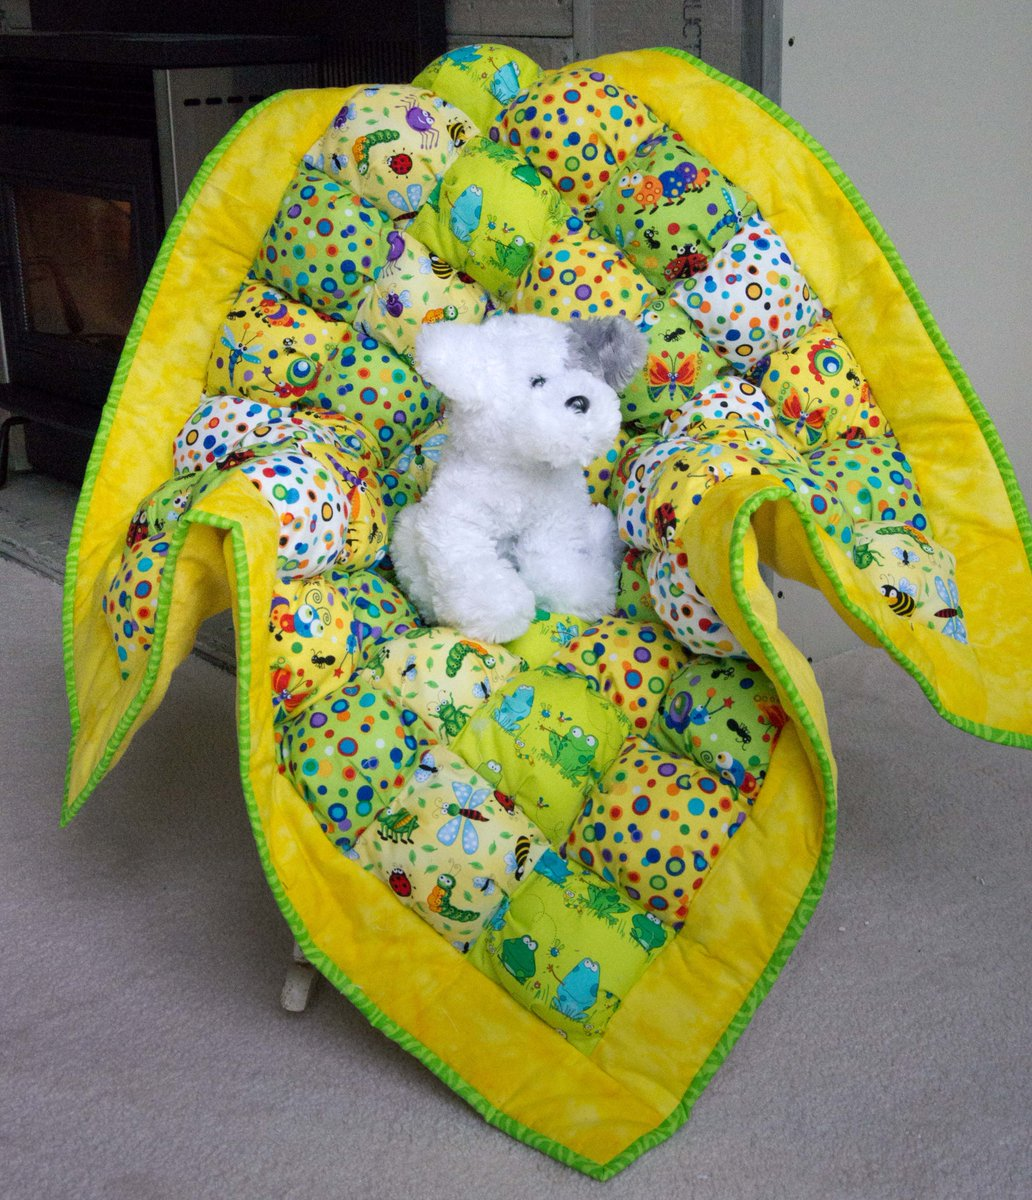 #Bug Out with this #BRIGHT #Bugalicious #tummyTime #Quilt perfect #ShowerGift  #Newborn #Nursery #newMom #BabyGift   http:// buff.ly/2sQwtz3  &nbsp;  <br>http://pic.twitter.com/8jyZaTvCZ3